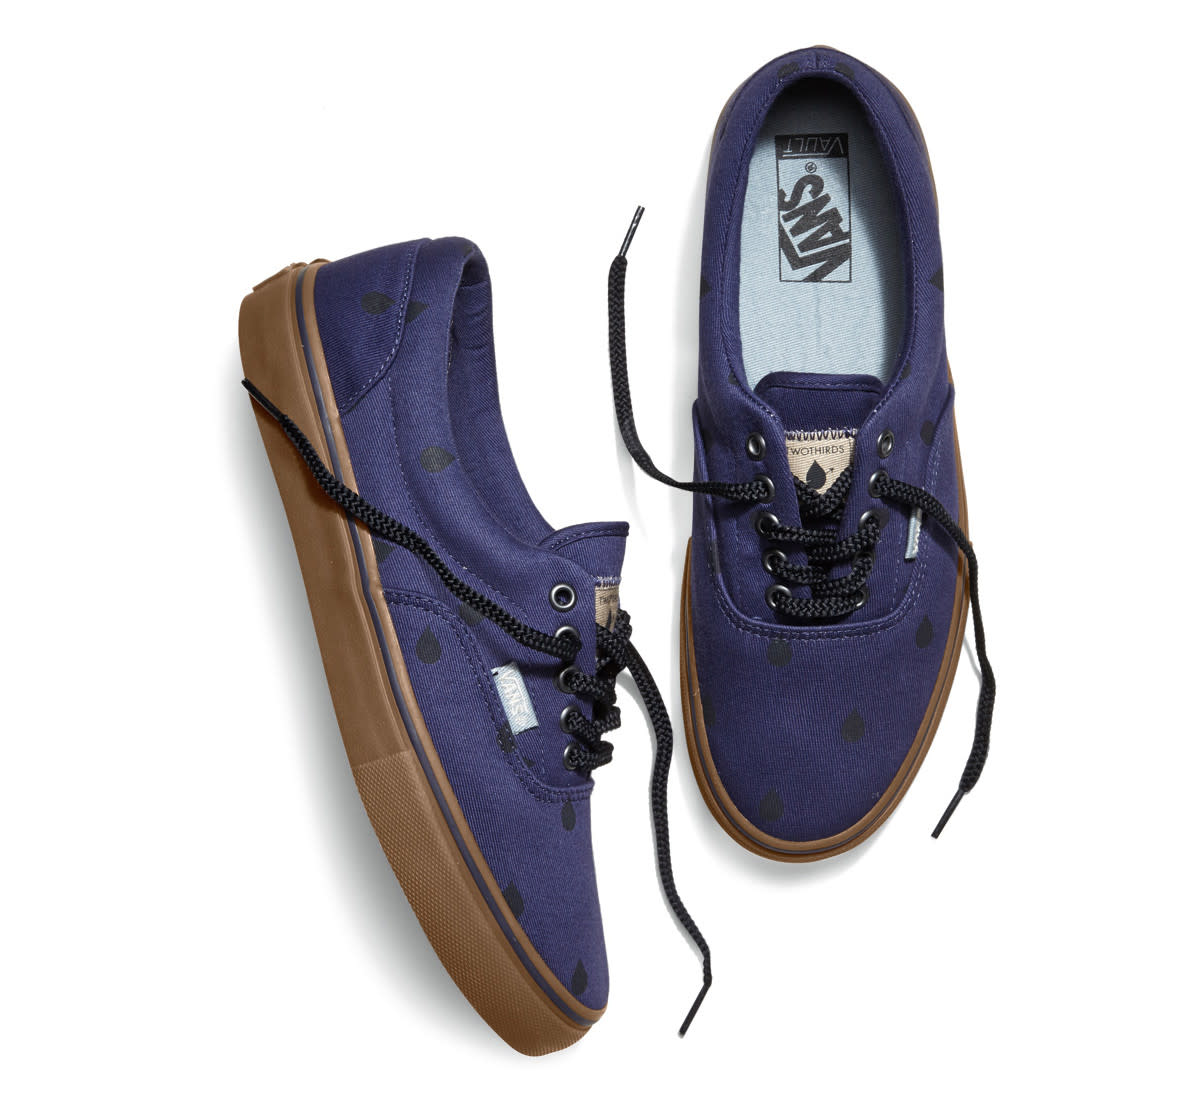 twothirds-vault-by-vans-collection-08